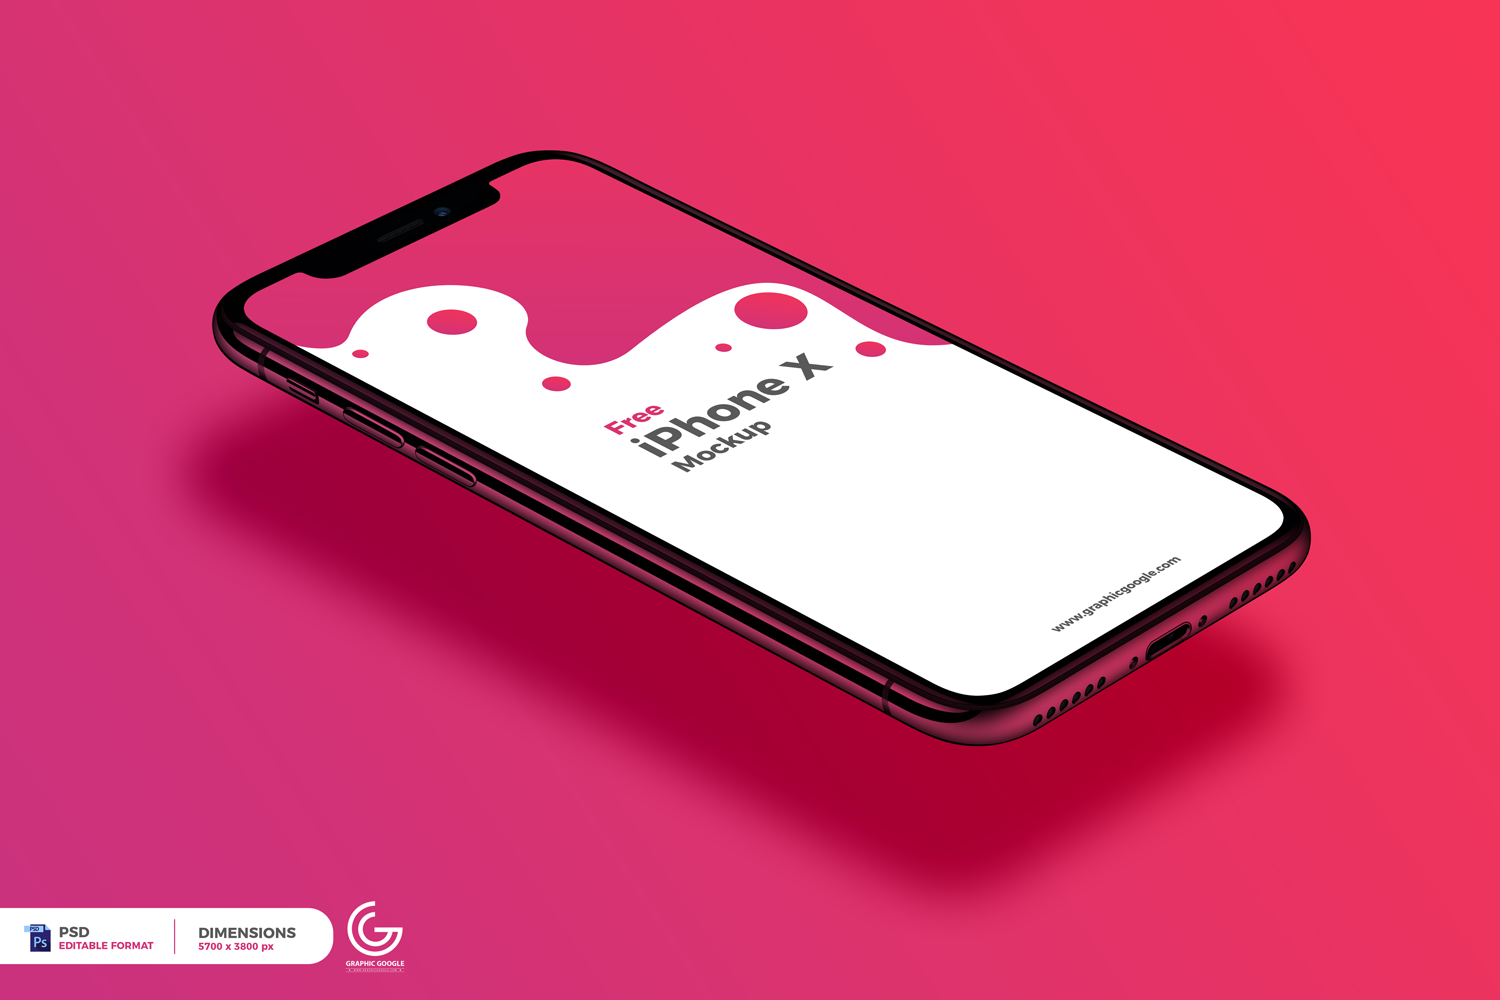 Free Perspective View iPhone X Mockup.